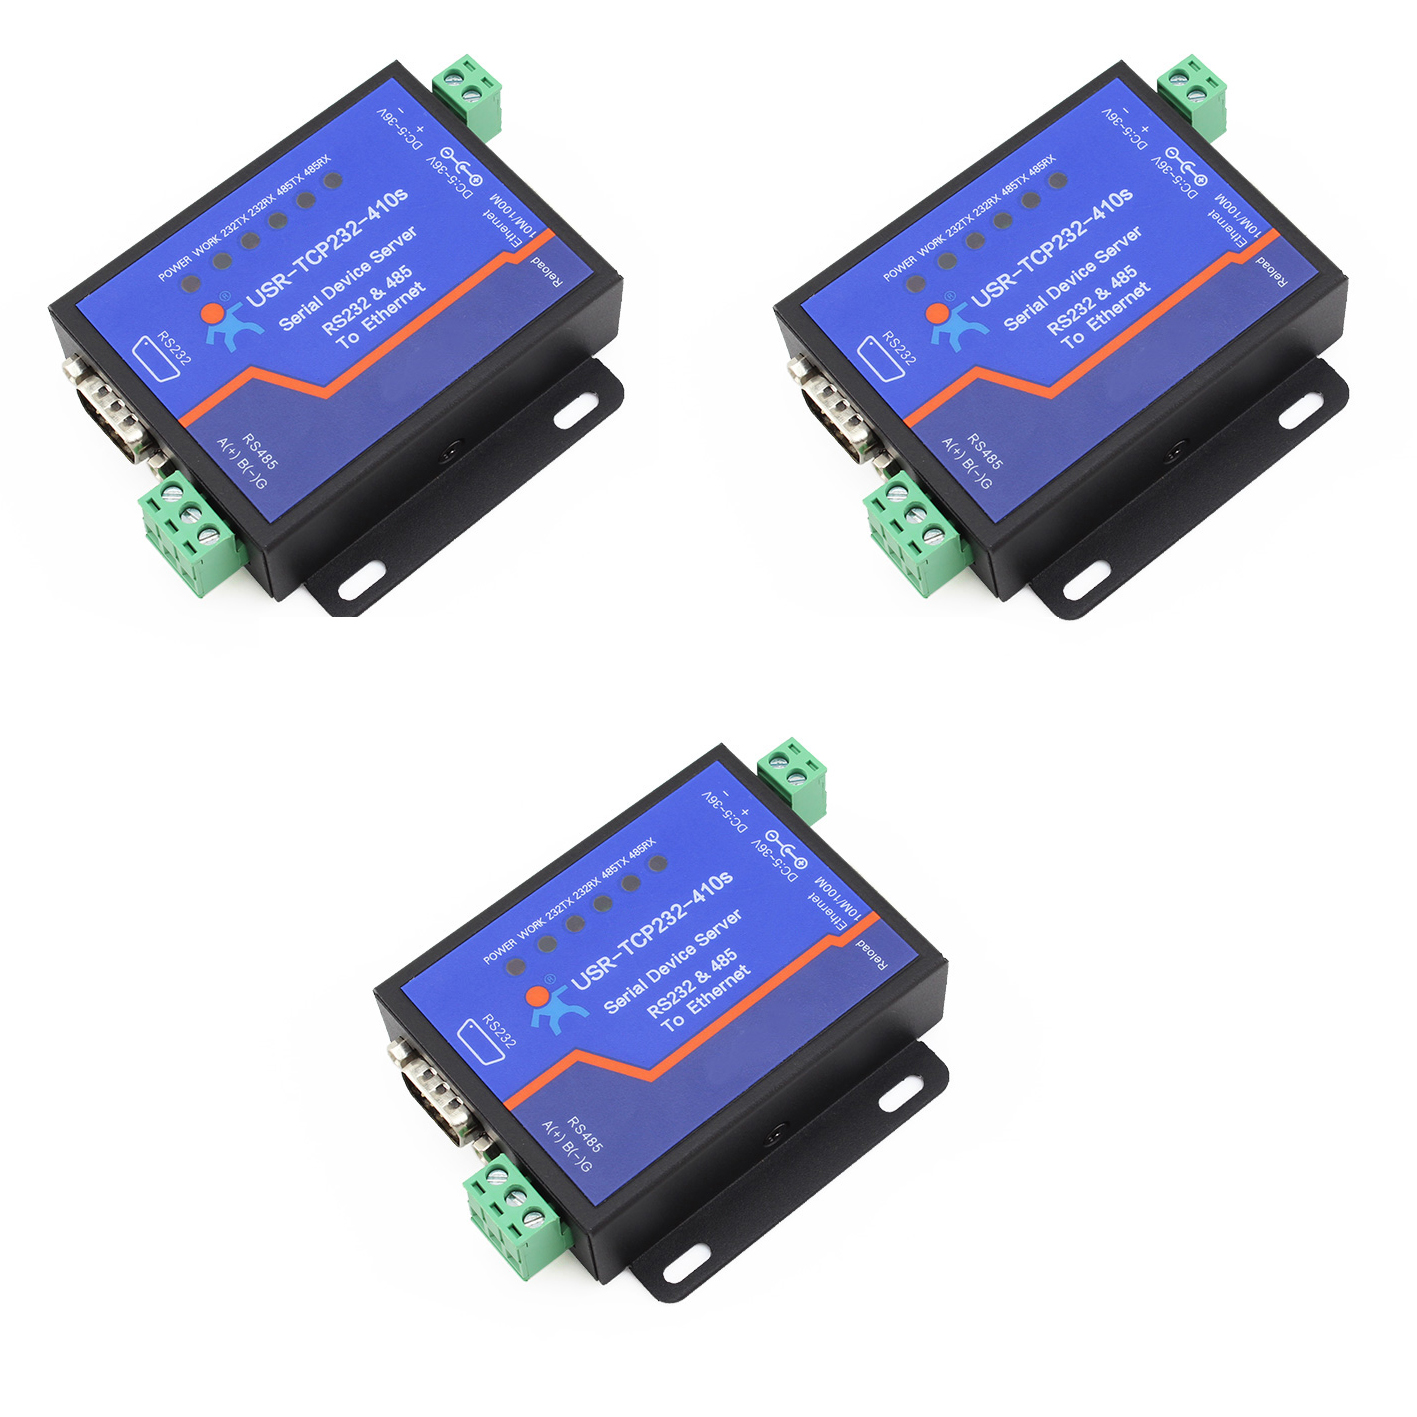 Q18039-3 3 PCS USR-TCP232-410S Terminal Power Supply RS232 RS485 to TCP/IP Converter Serial Ethernet Serial Device Server q18040 usriot usr n520 serial to ethernet server tcp ip converter double serial device rs232 rs485 rs422 multi host polling